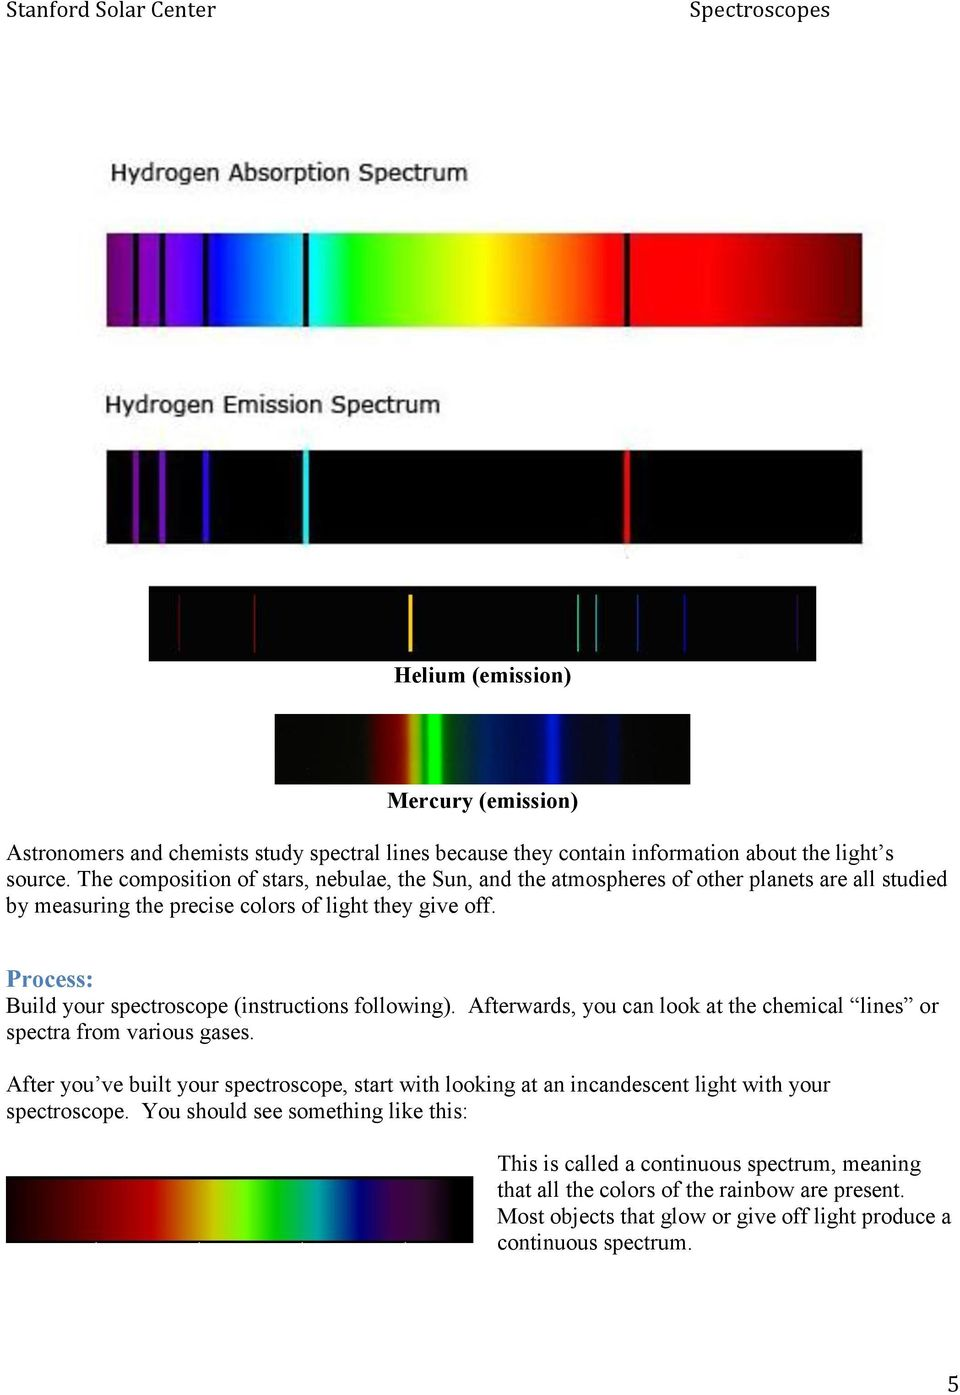 Process: Build your spectroscope (instructions following). Afterwards, you can look at the chemical lines or spectra from various gases.